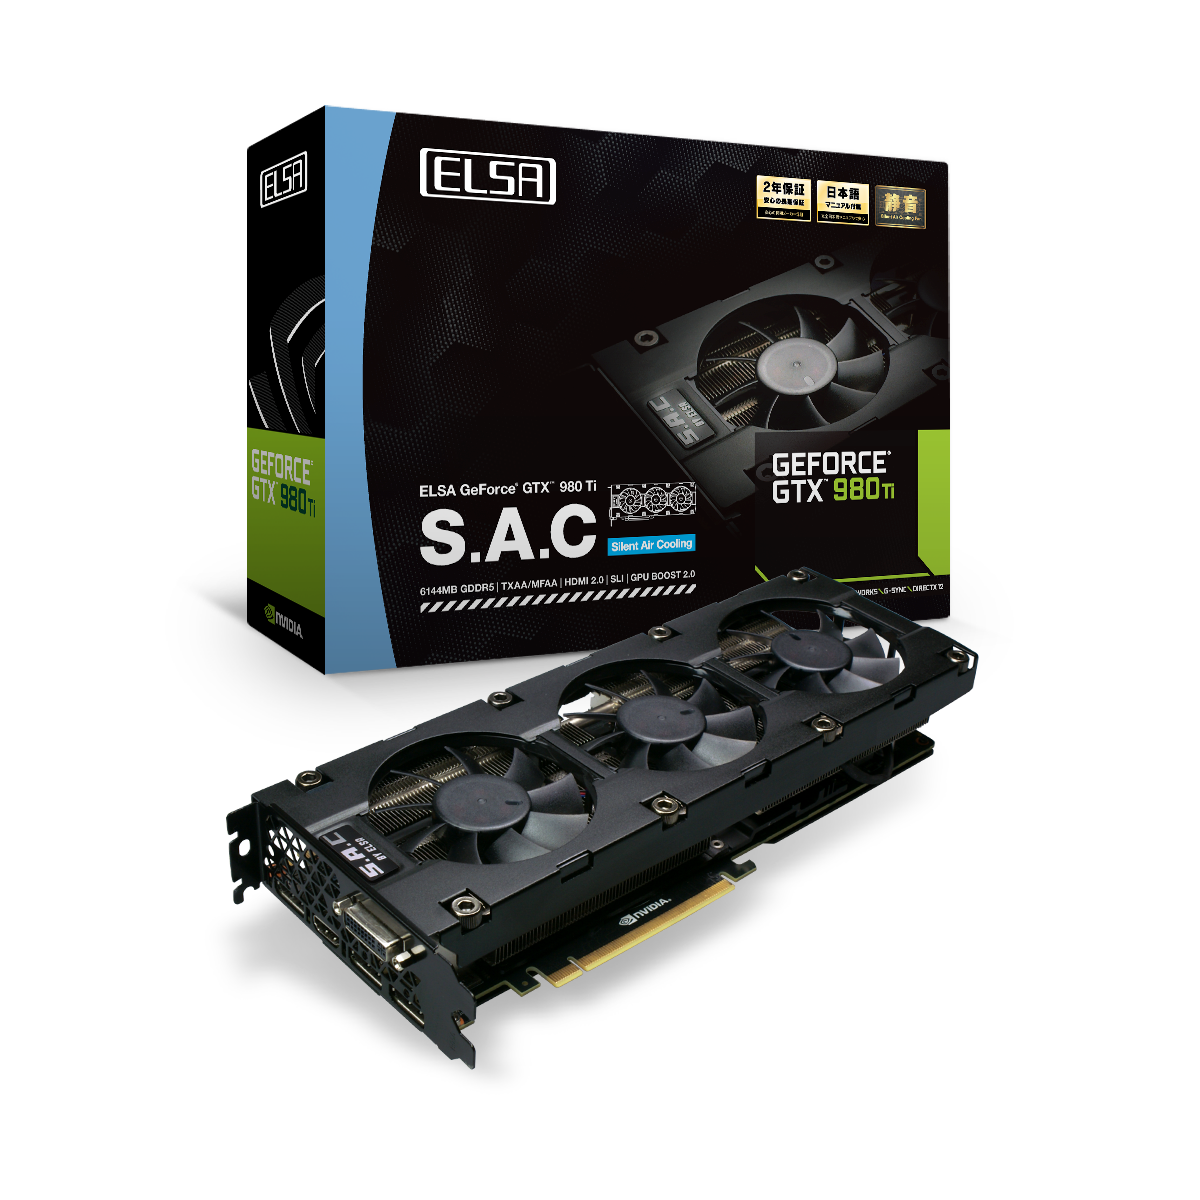 elsa_geforce_gtx_980_ti_6gb_sac_box_card